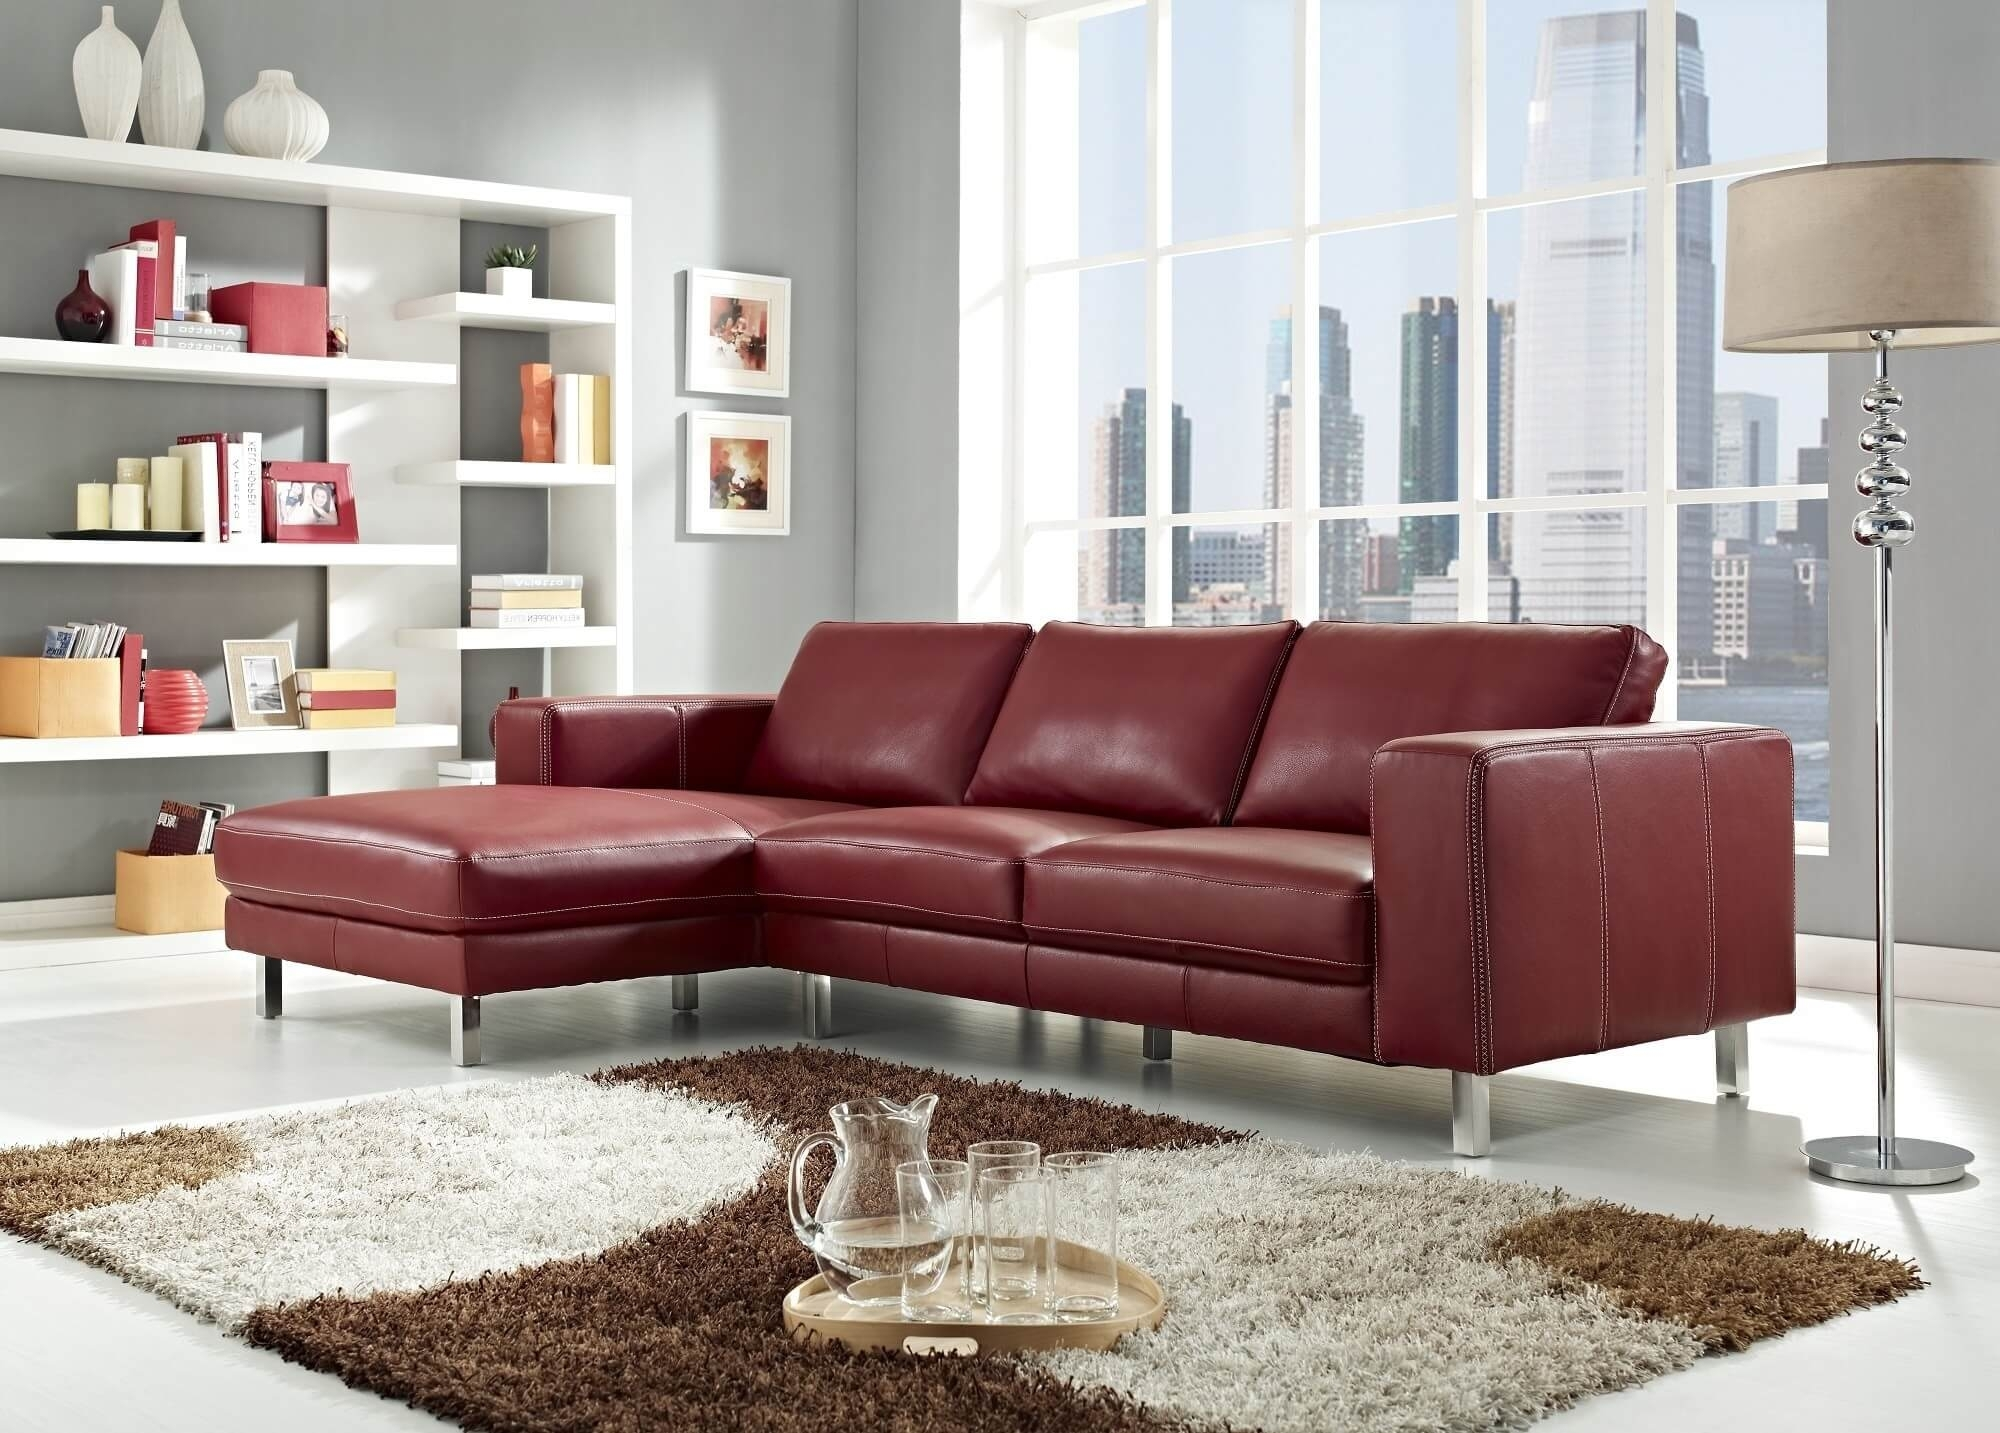 Stylish Modern Red Sectional Sofas Pertaining To Red Leather Couches For Living Room (View 8 of 10)